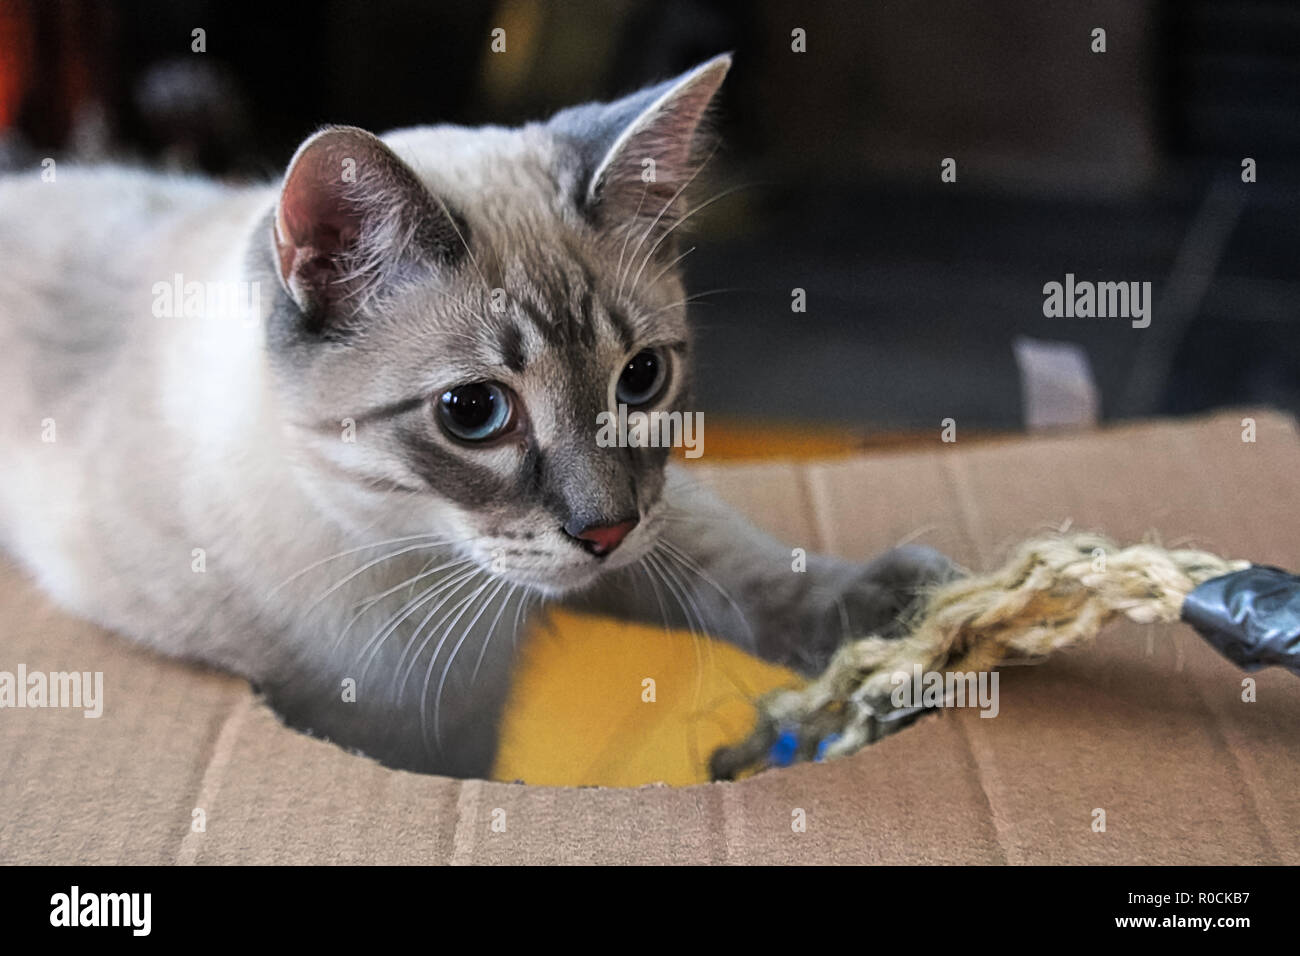 A playful kitten plays with a rope in a cardboard box - Stock Image